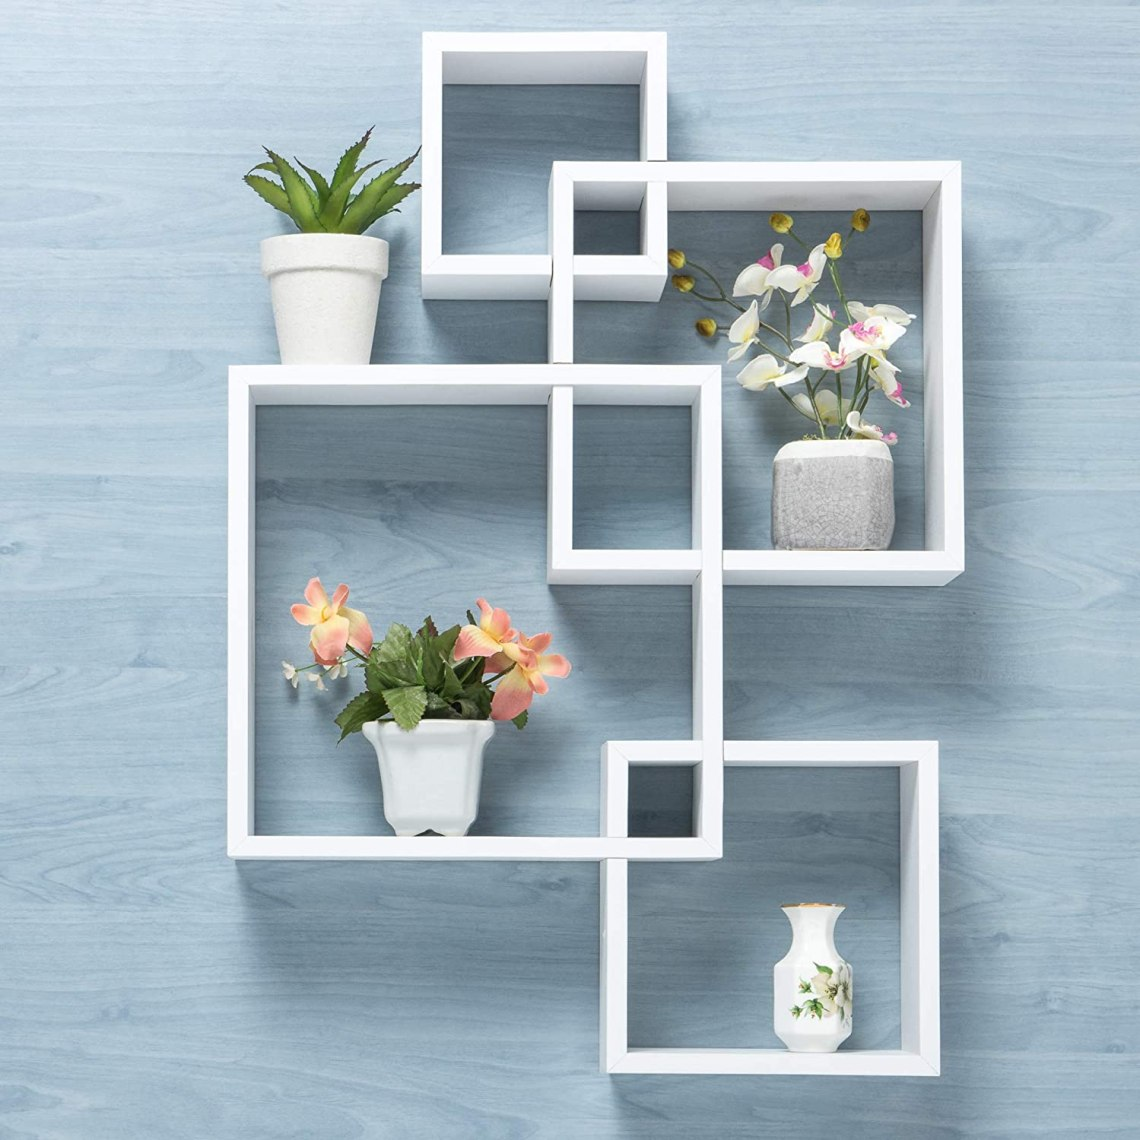 Gatton Design Wall Mounted Floating Shelves Interlocking Four Cube Design Perfect Shelving Unit For Bedrooms Offices Living Rooms Kitchens Floating Shelf Decor Storage Display White